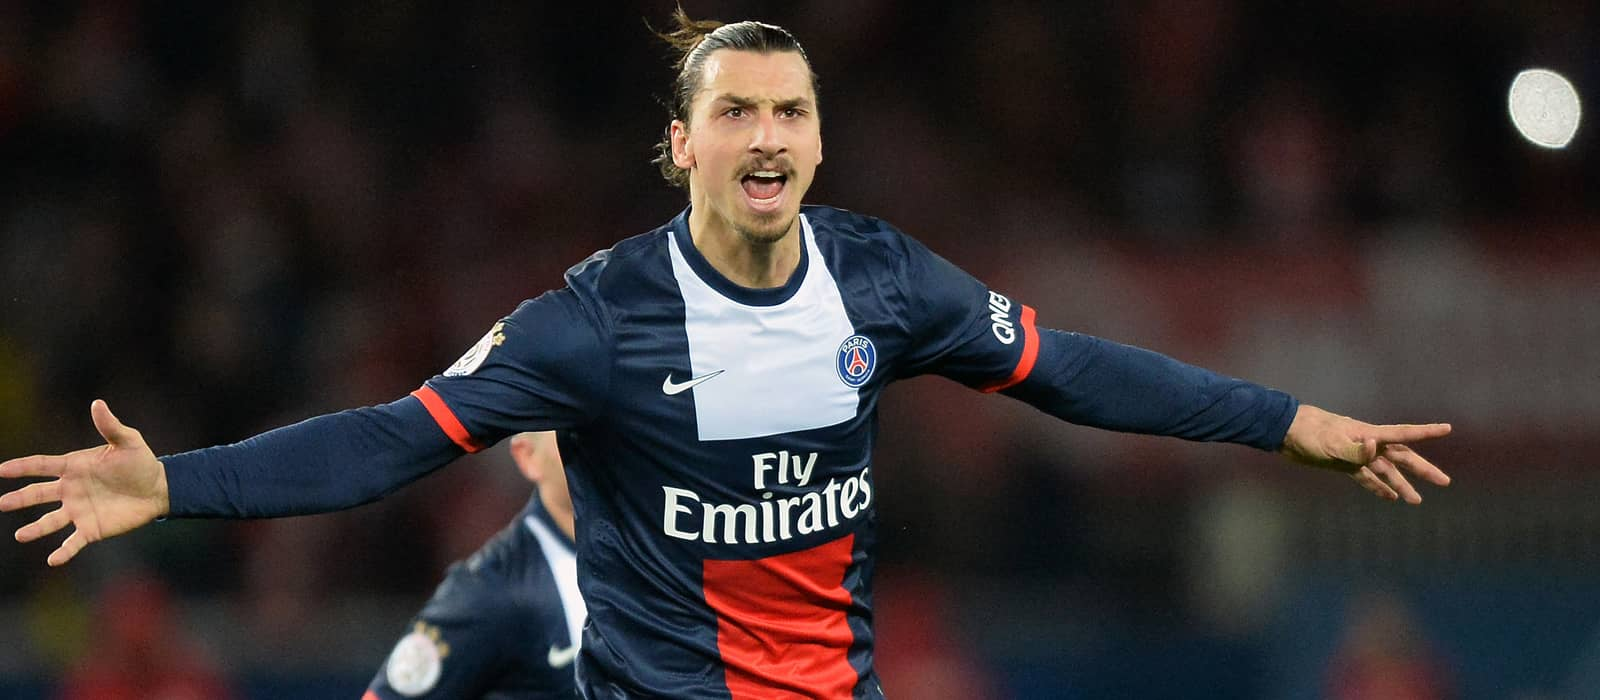 Man Utd could miss out on Ibrahimovic if they keep van Gaal – report